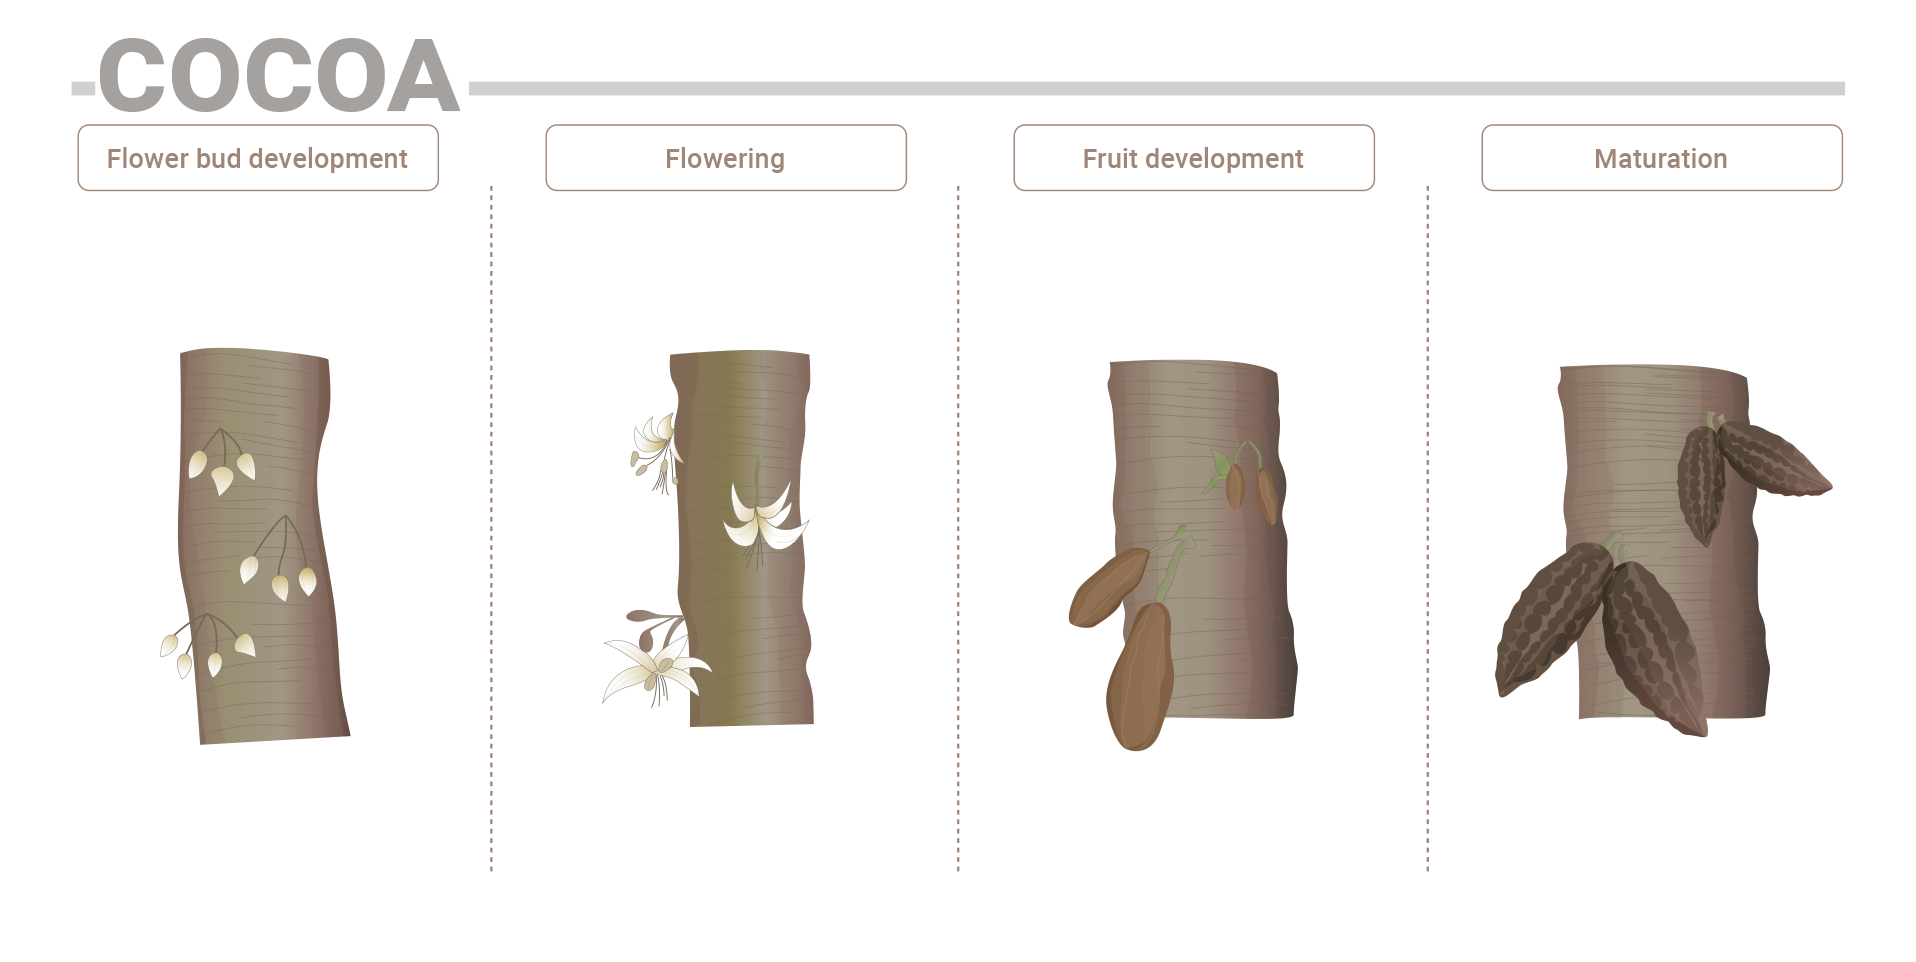 Cocoa phenological phases